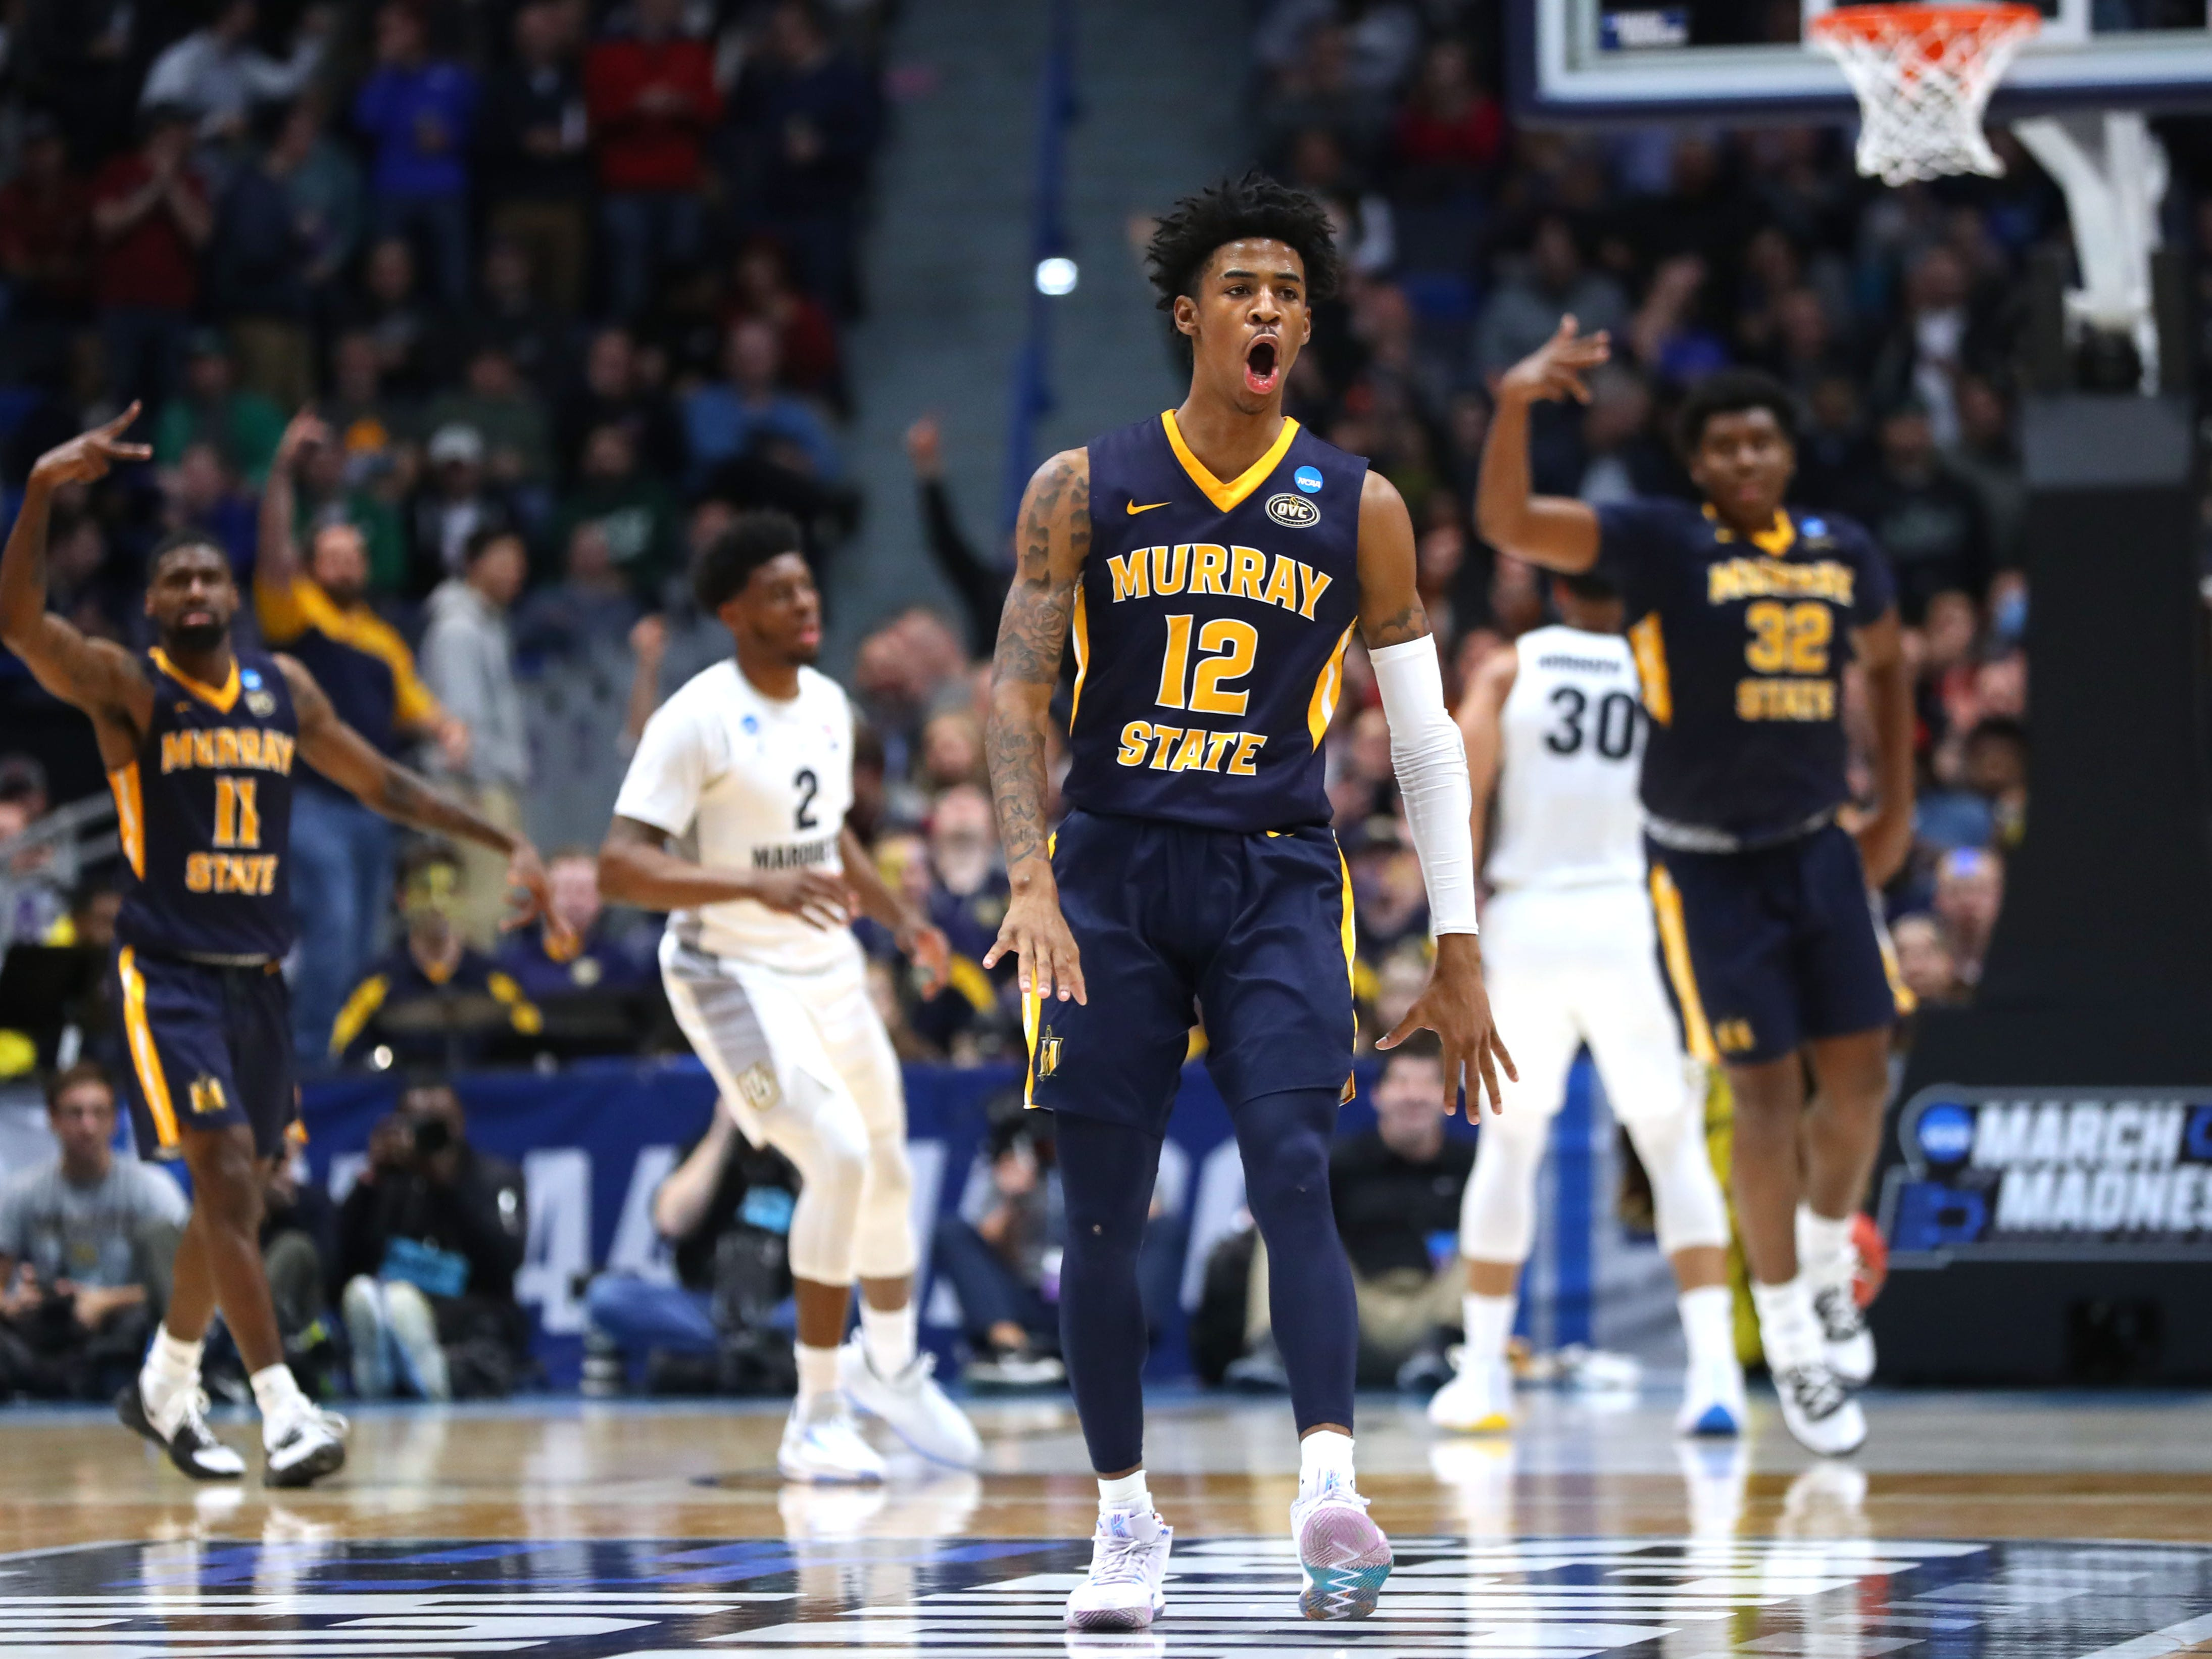 Murray State star Ja Morant whoops it up after hitting a shot against Marquette at the end of the first half.